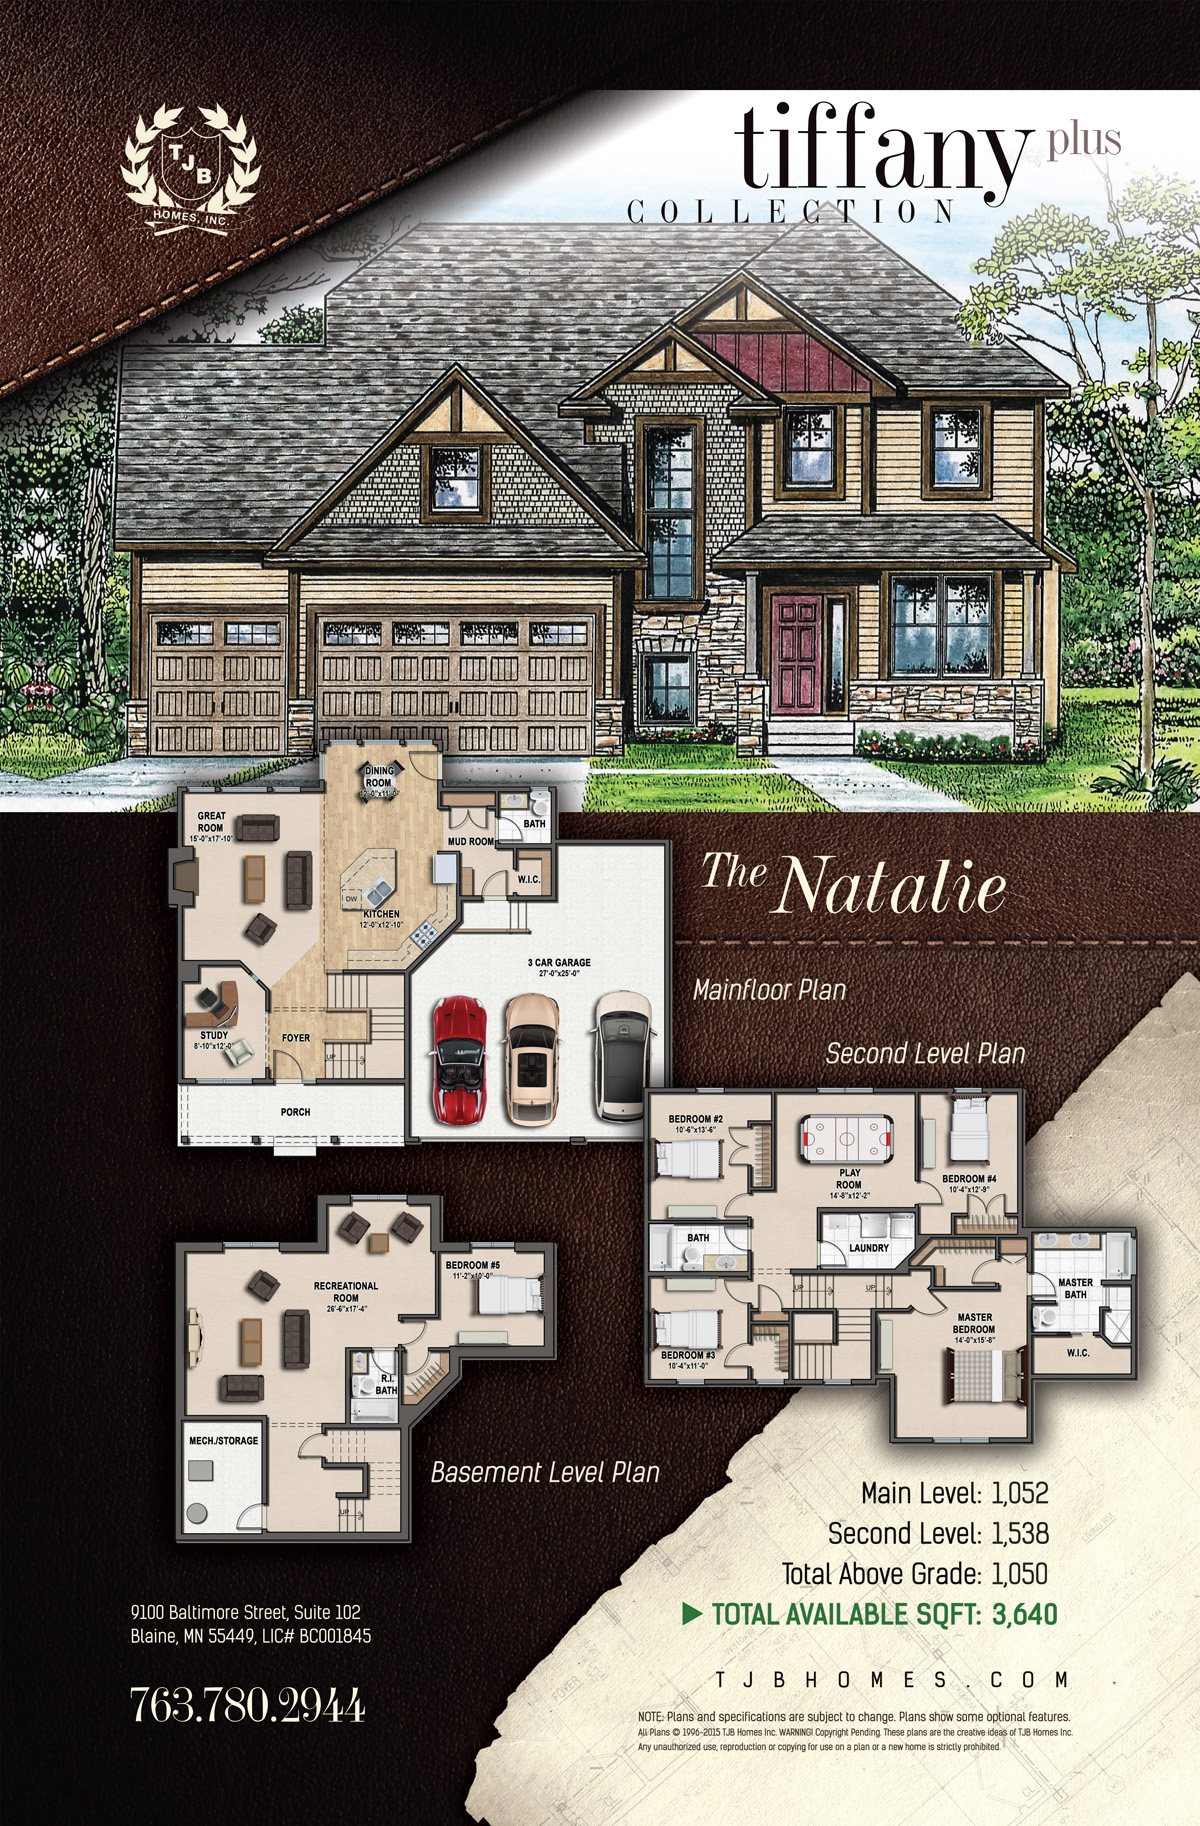 The Natalie Home Plan